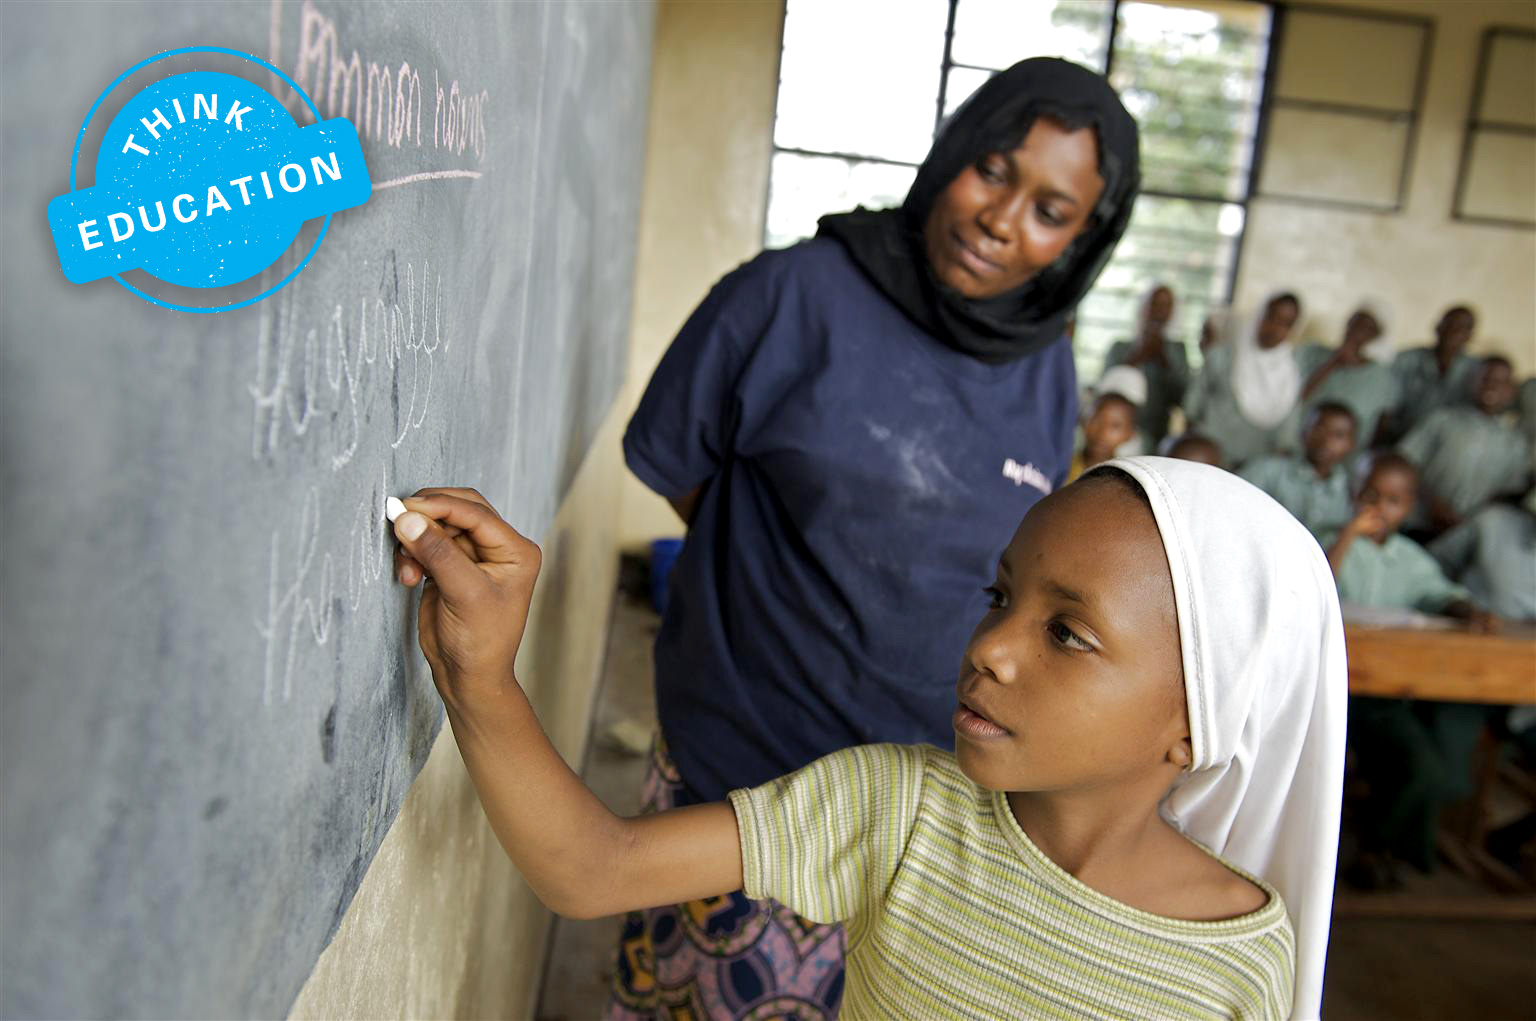 A girl writes on a blackboard as a lady beside her looks on in a classroom of school students. The image is labeled 'Think Education'